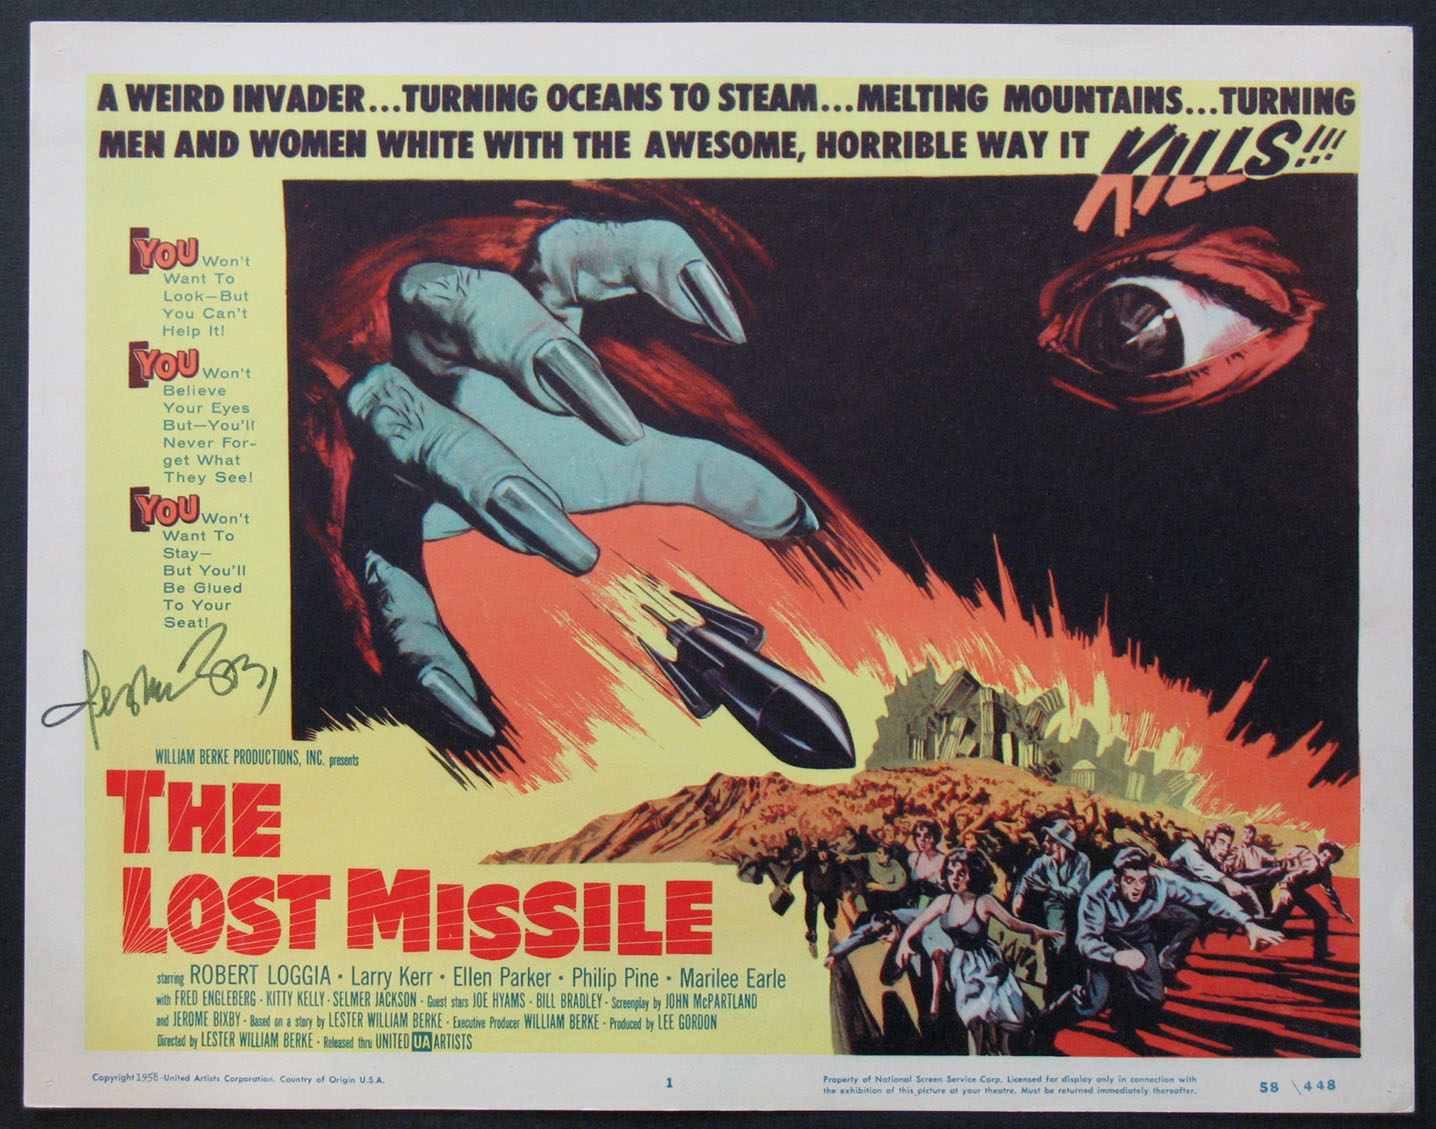 LOST MISSILE, THE @ FilmPosters.com